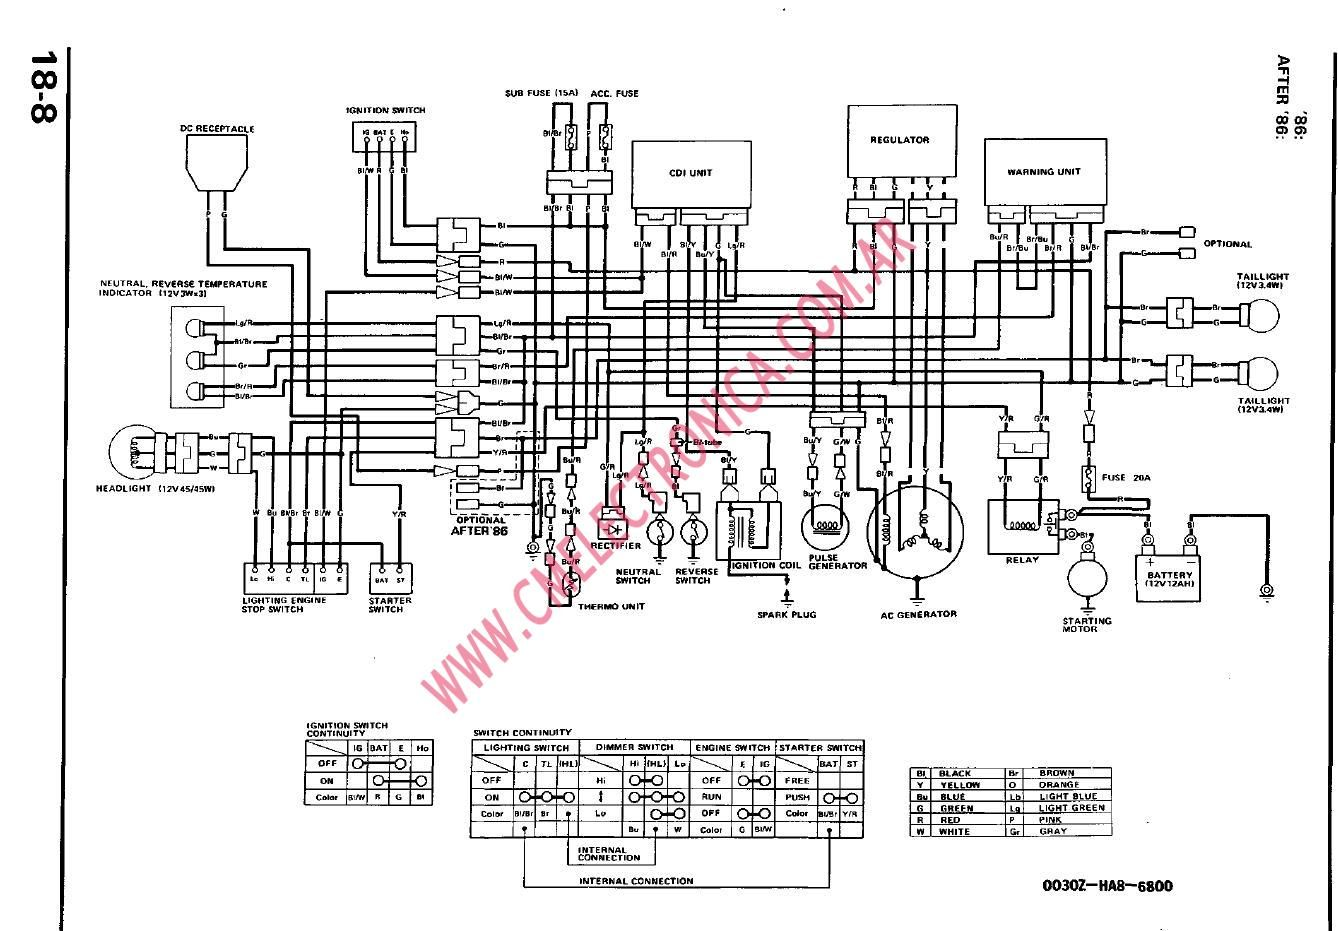 Wiring Diagram Furthermore Mobile Work Diagram On Harley ... on